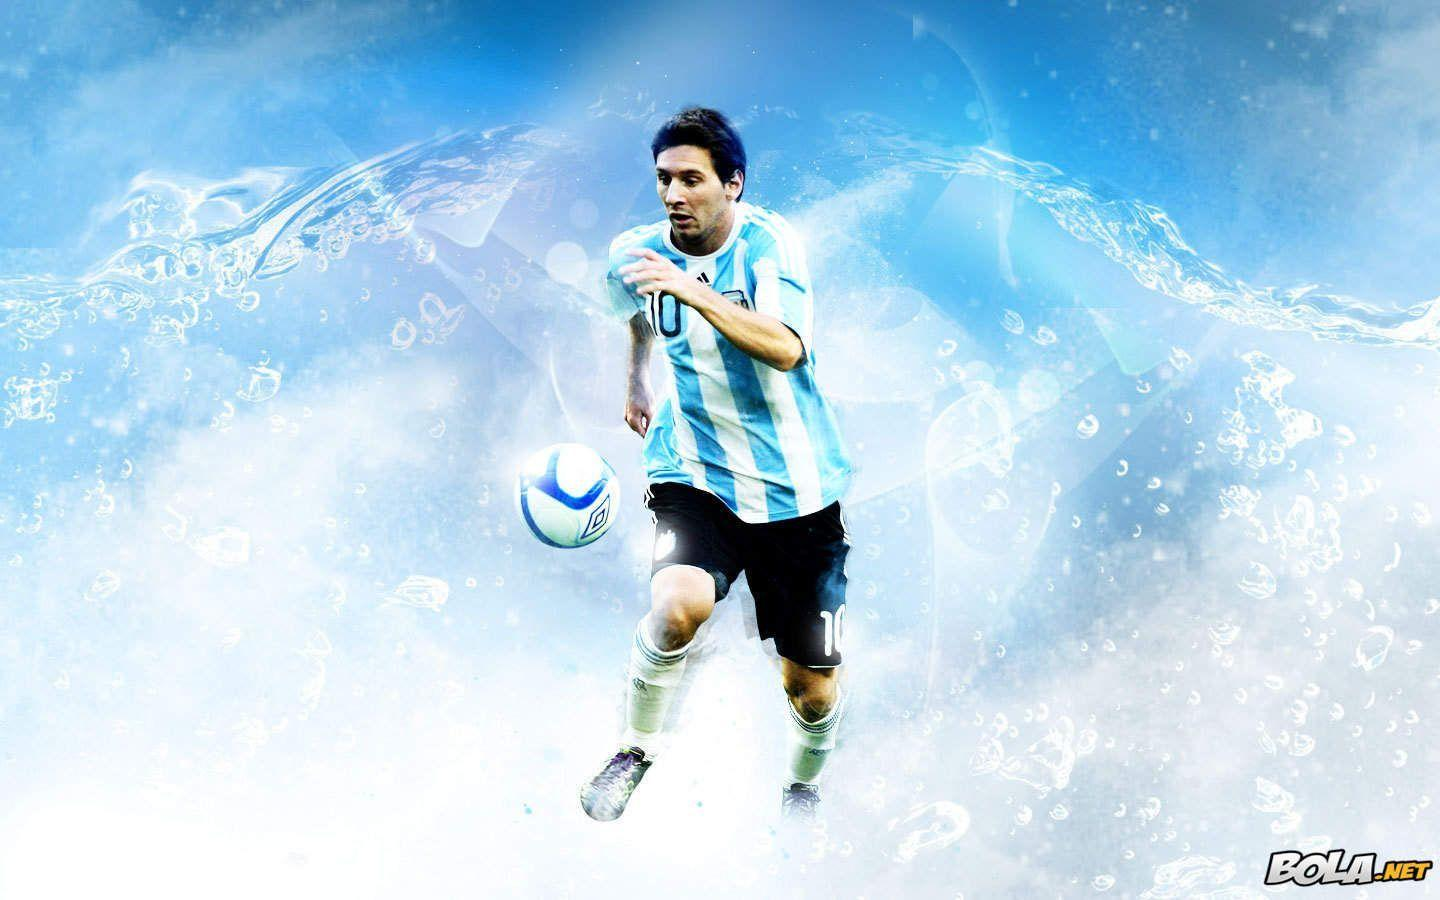 Lionel Messi Wallpapers 2021 Hd And 4k Images Trafoos